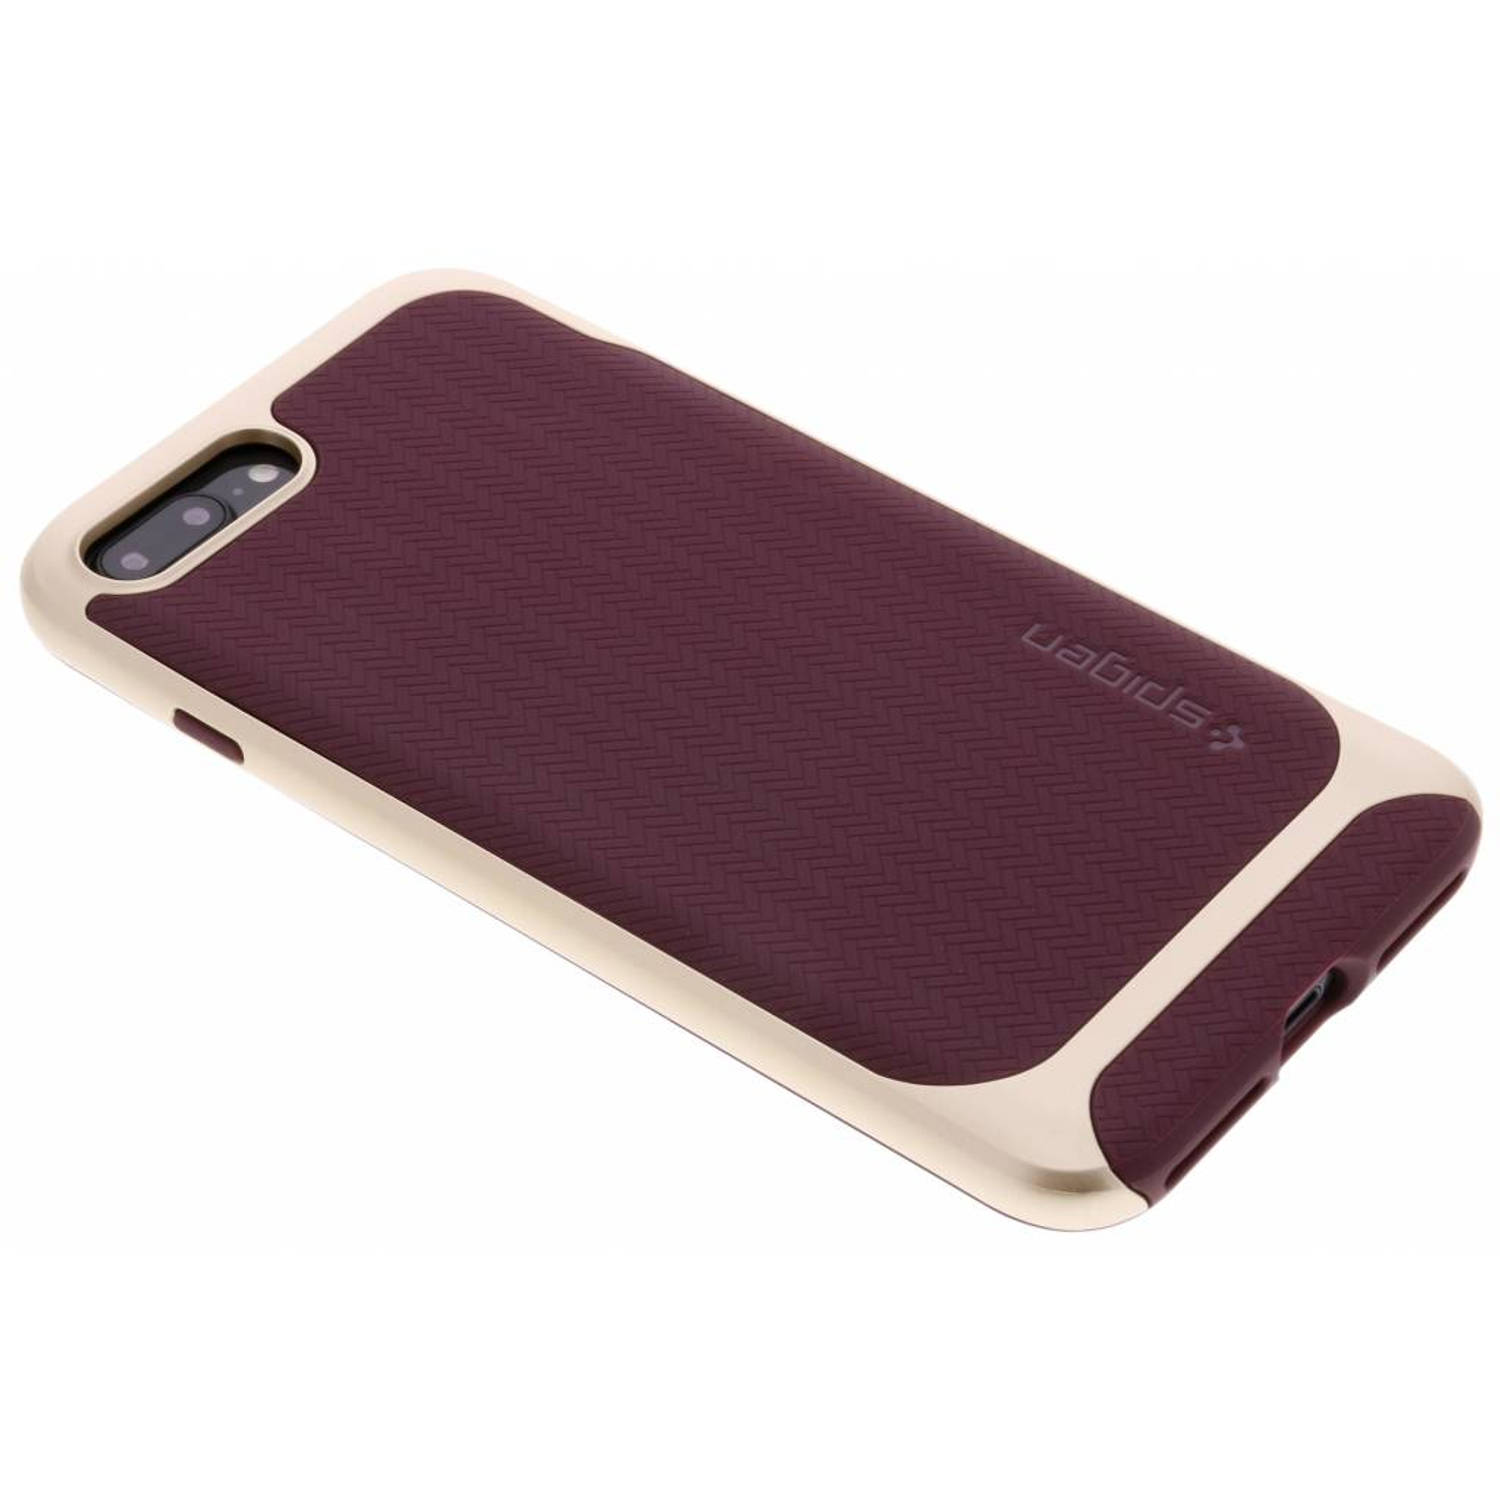 Paarse Neo Hybrid™ Herringbone Case voor de iPhone 8 Plus / 7 Plus